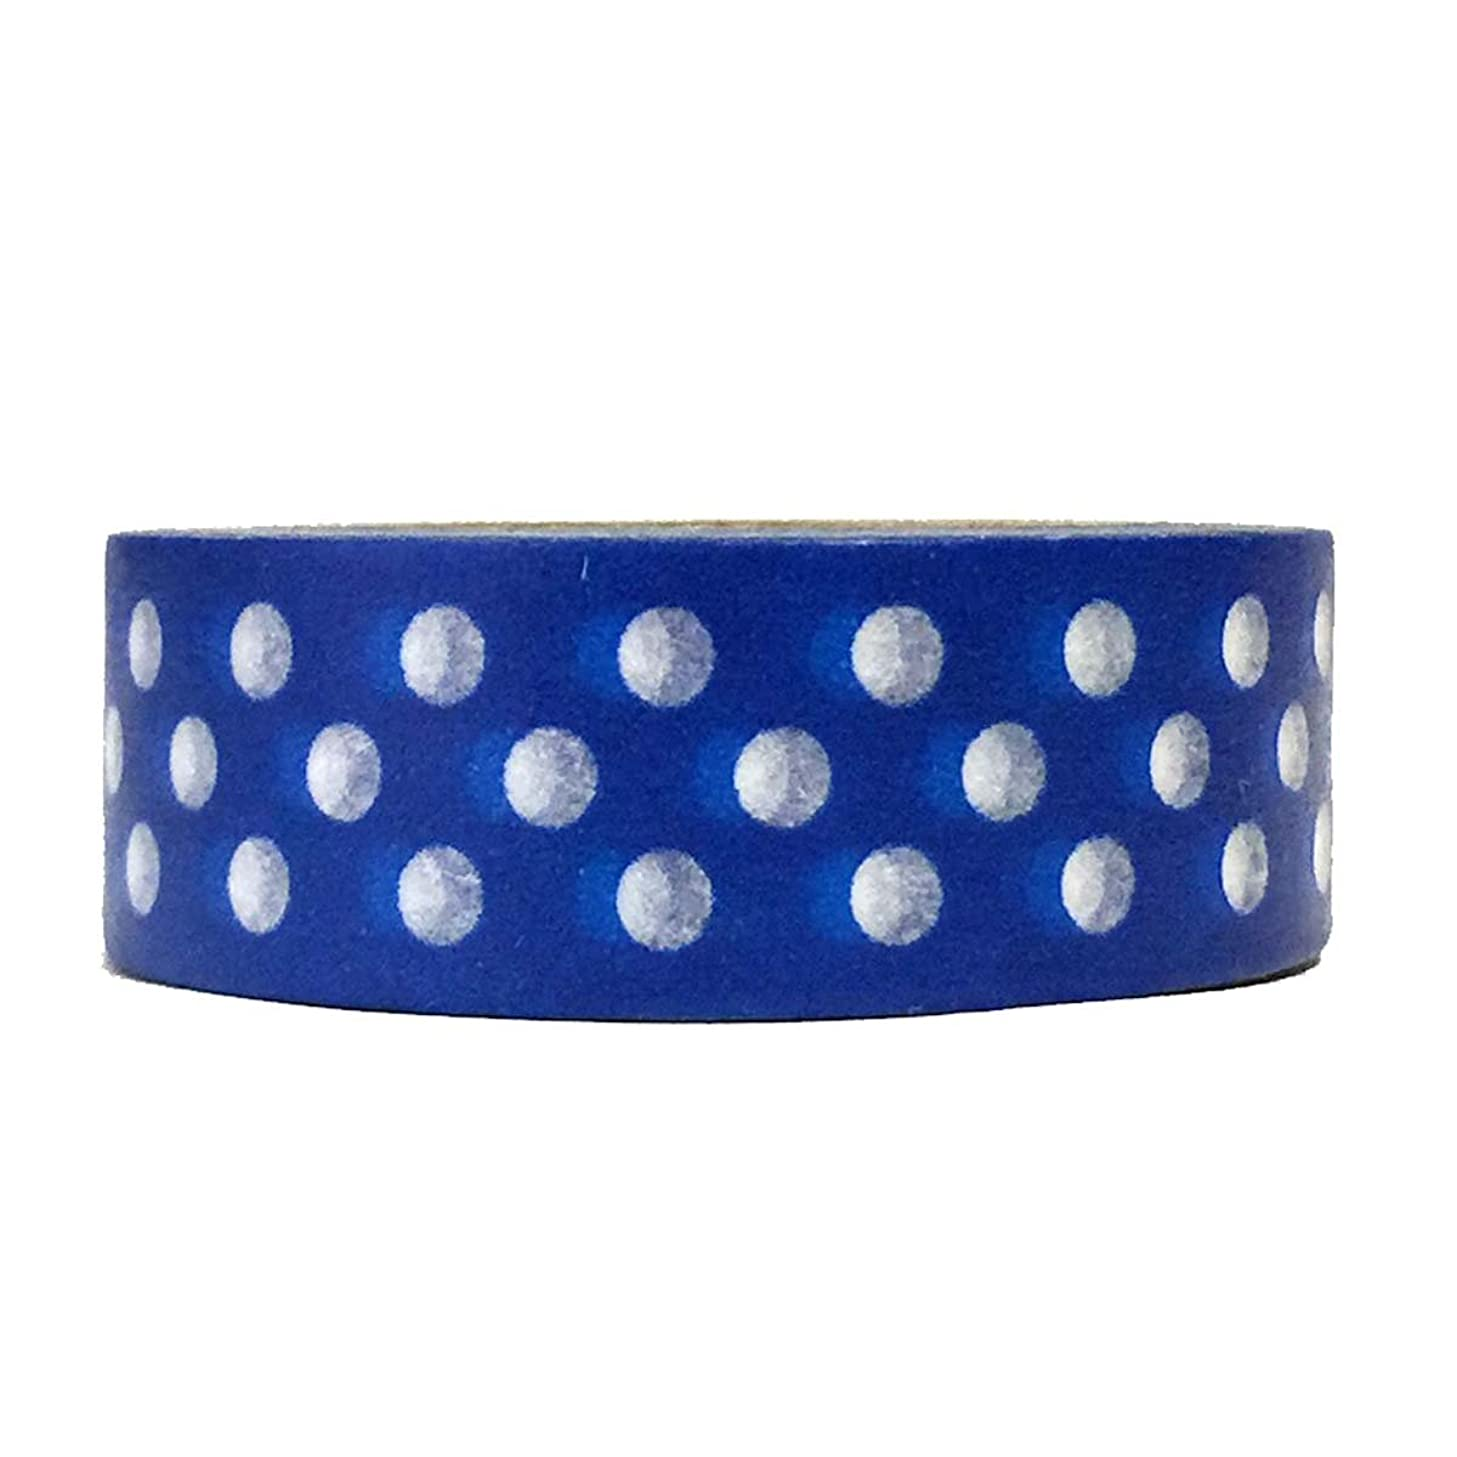 Allydrew Decorative Washi Masking Tape, Royal Blue Dots nfjexo0641611